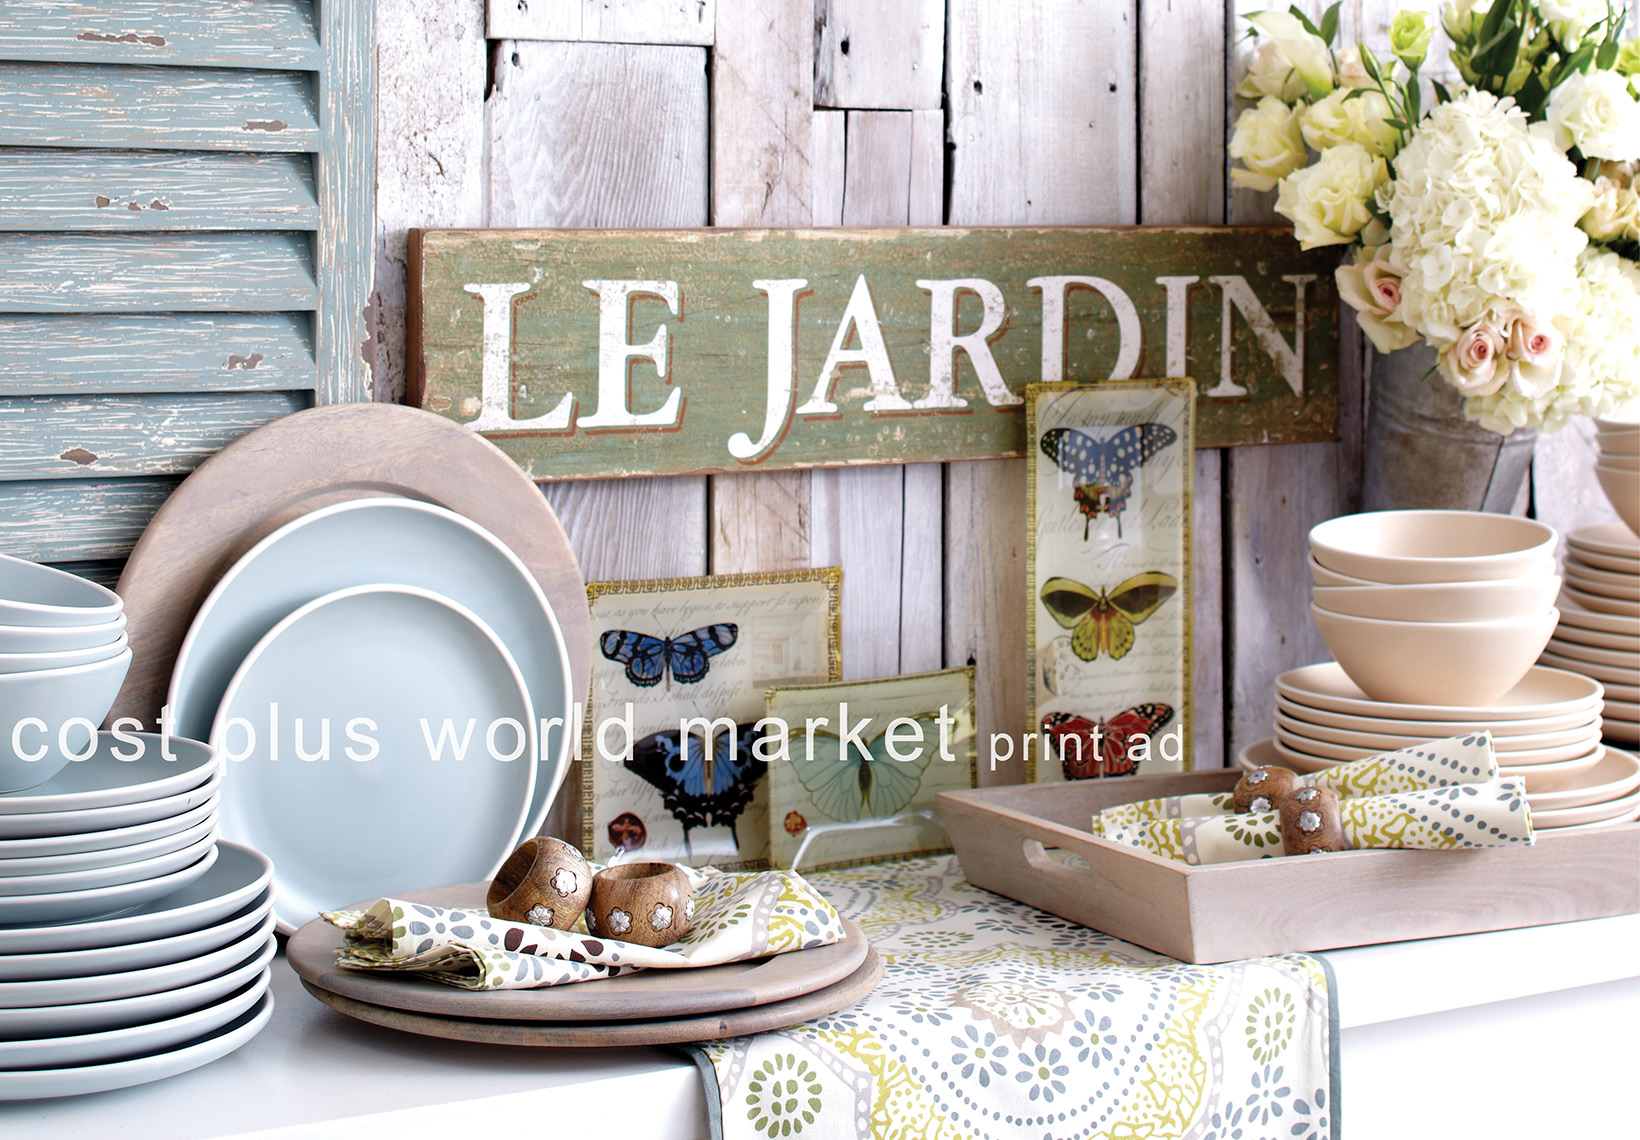 Le Jardin Plates for Cost Plus World Market